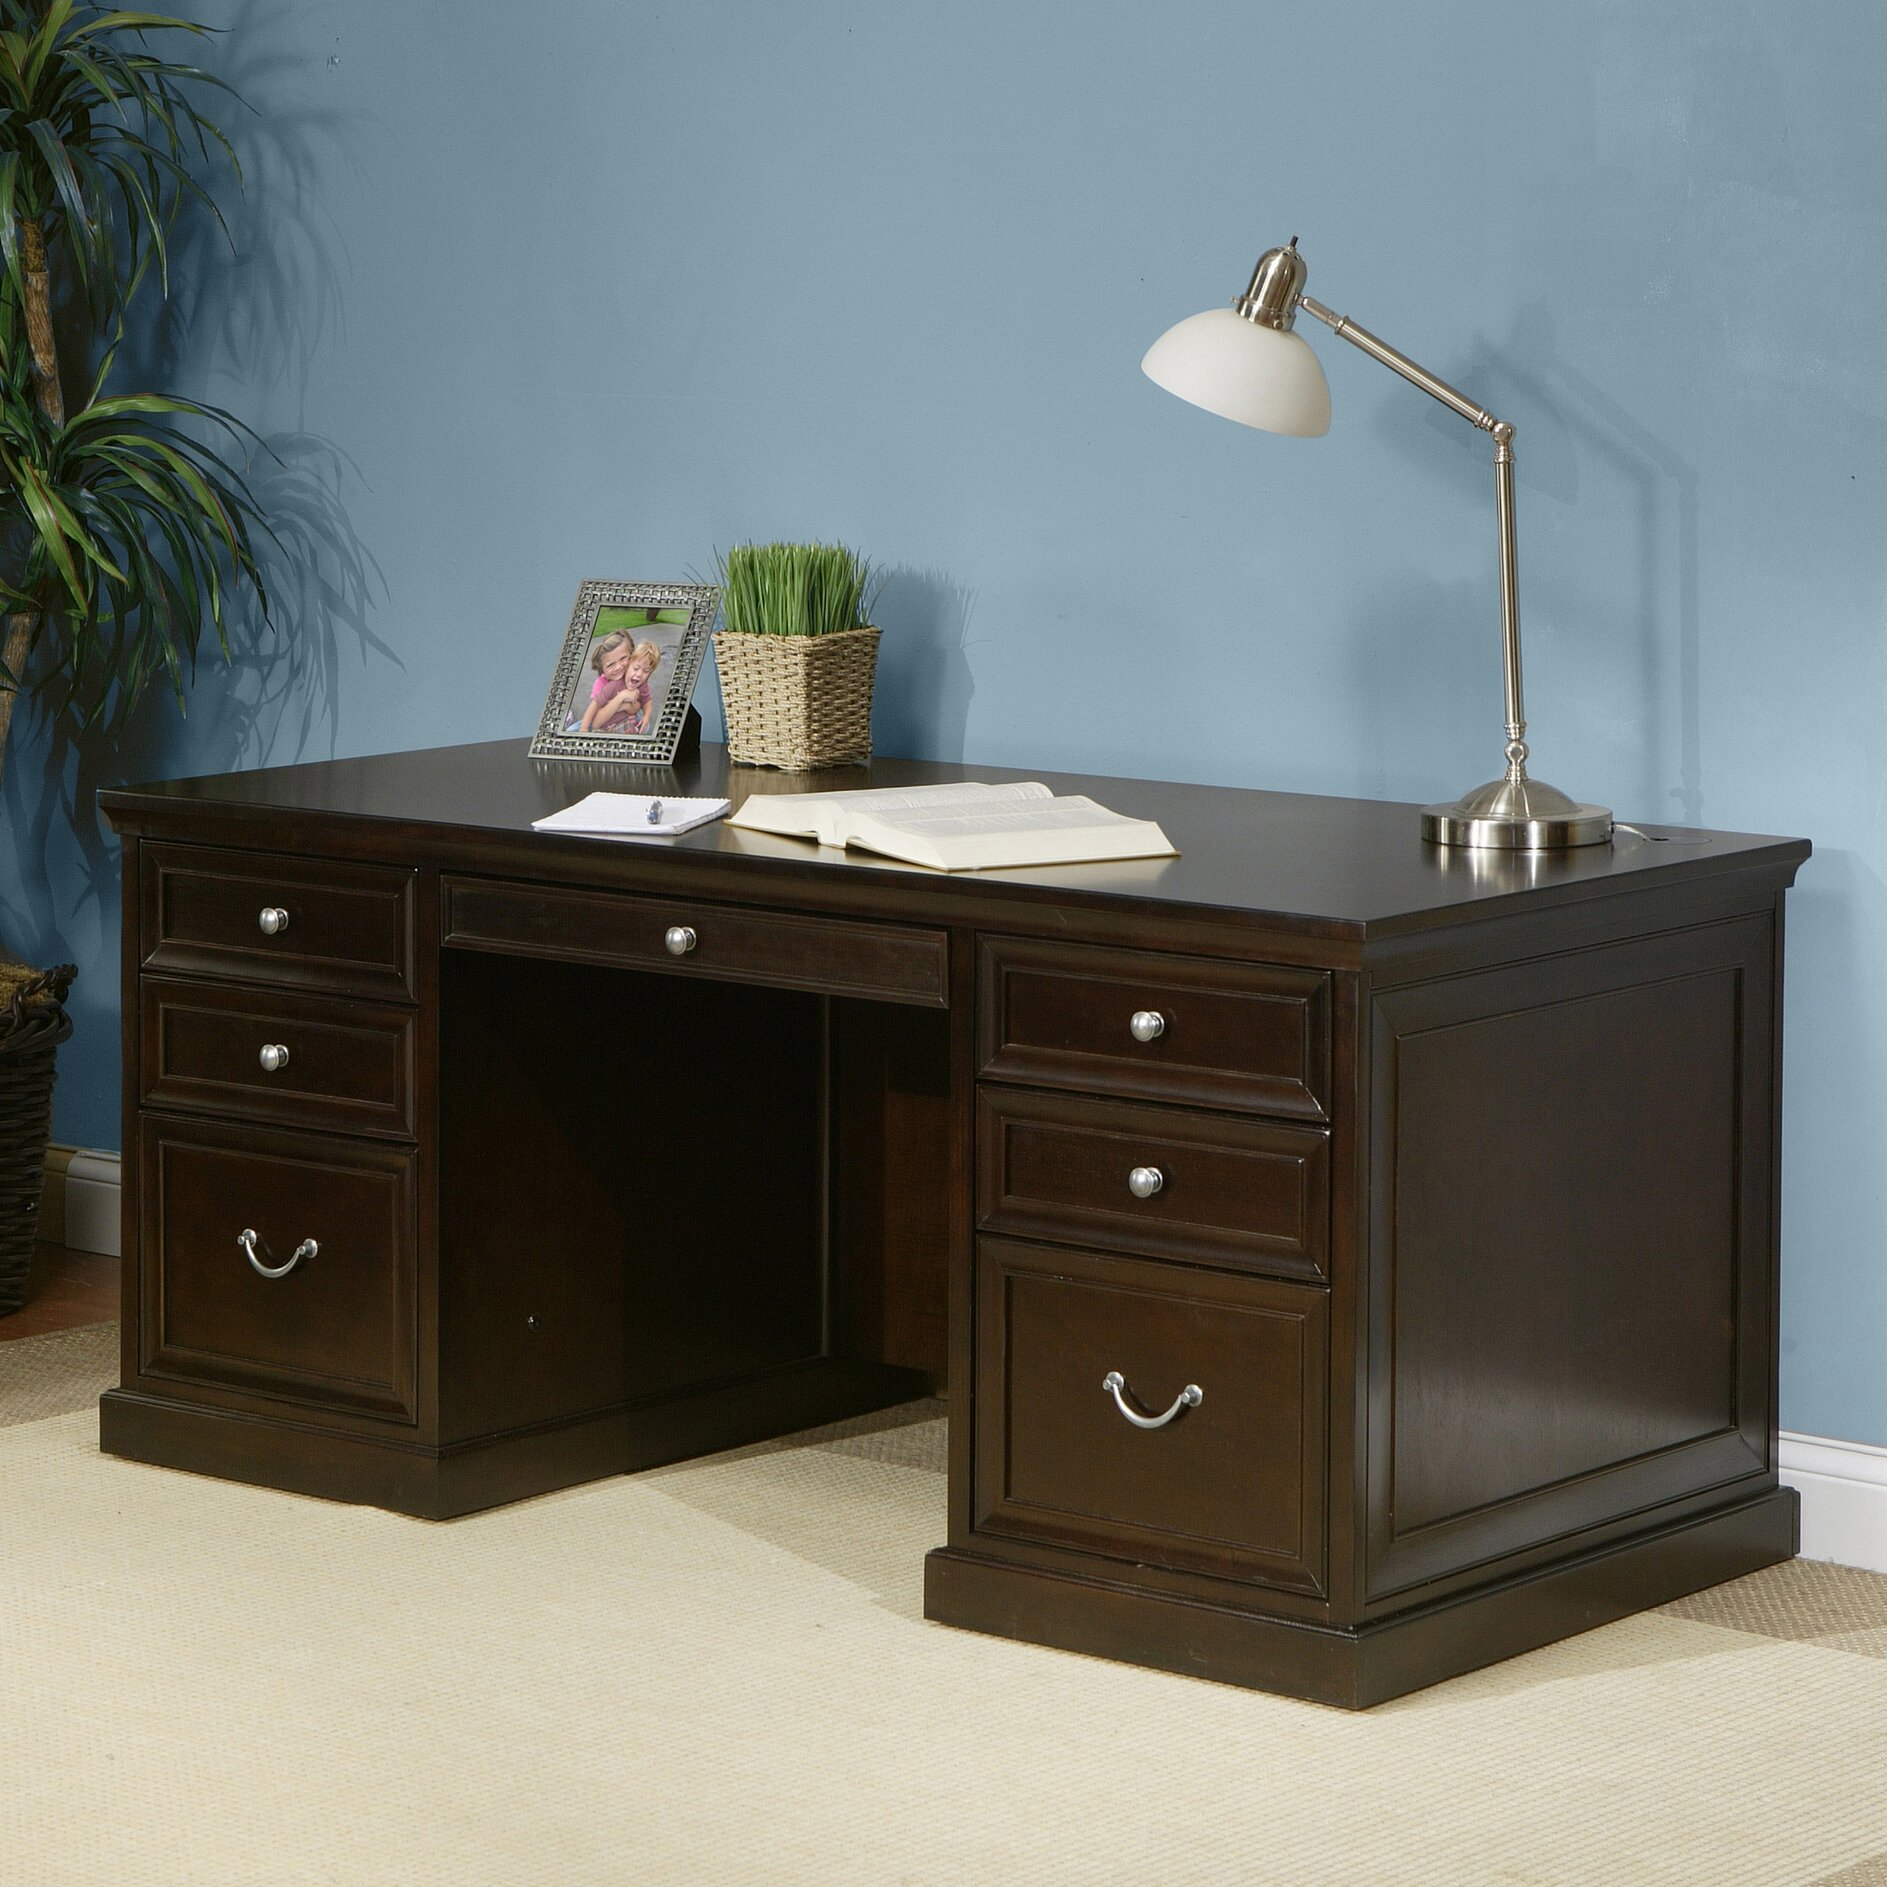 Kathy Ireland Home By Martin Furniture Fulton 5-Piece